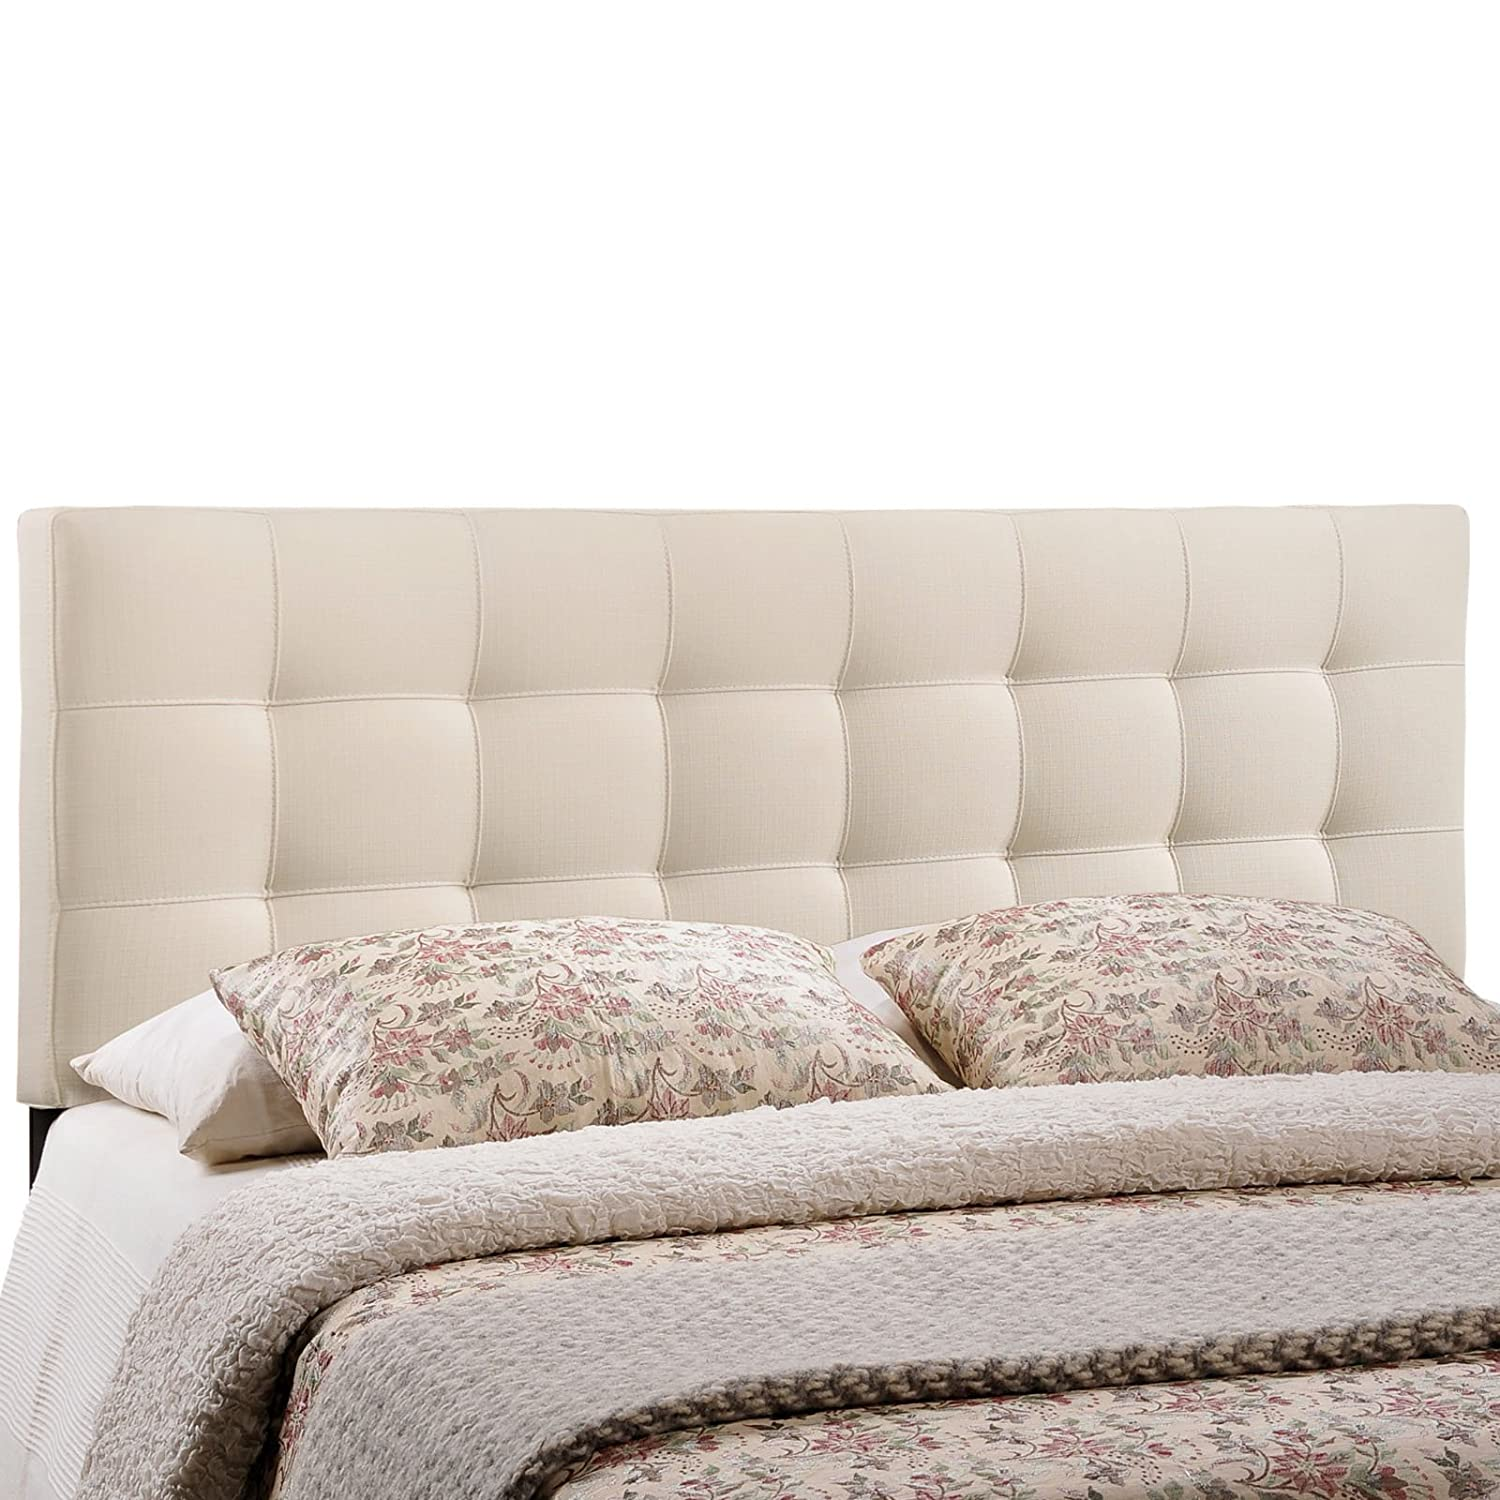 Amazon.com - Modway Lily Upholstered Tufted Fabric Headboard Queen Size In  Ivory - - Amazon.com - Modway Lily Upholstered Tufted Fabric Headboard Queen